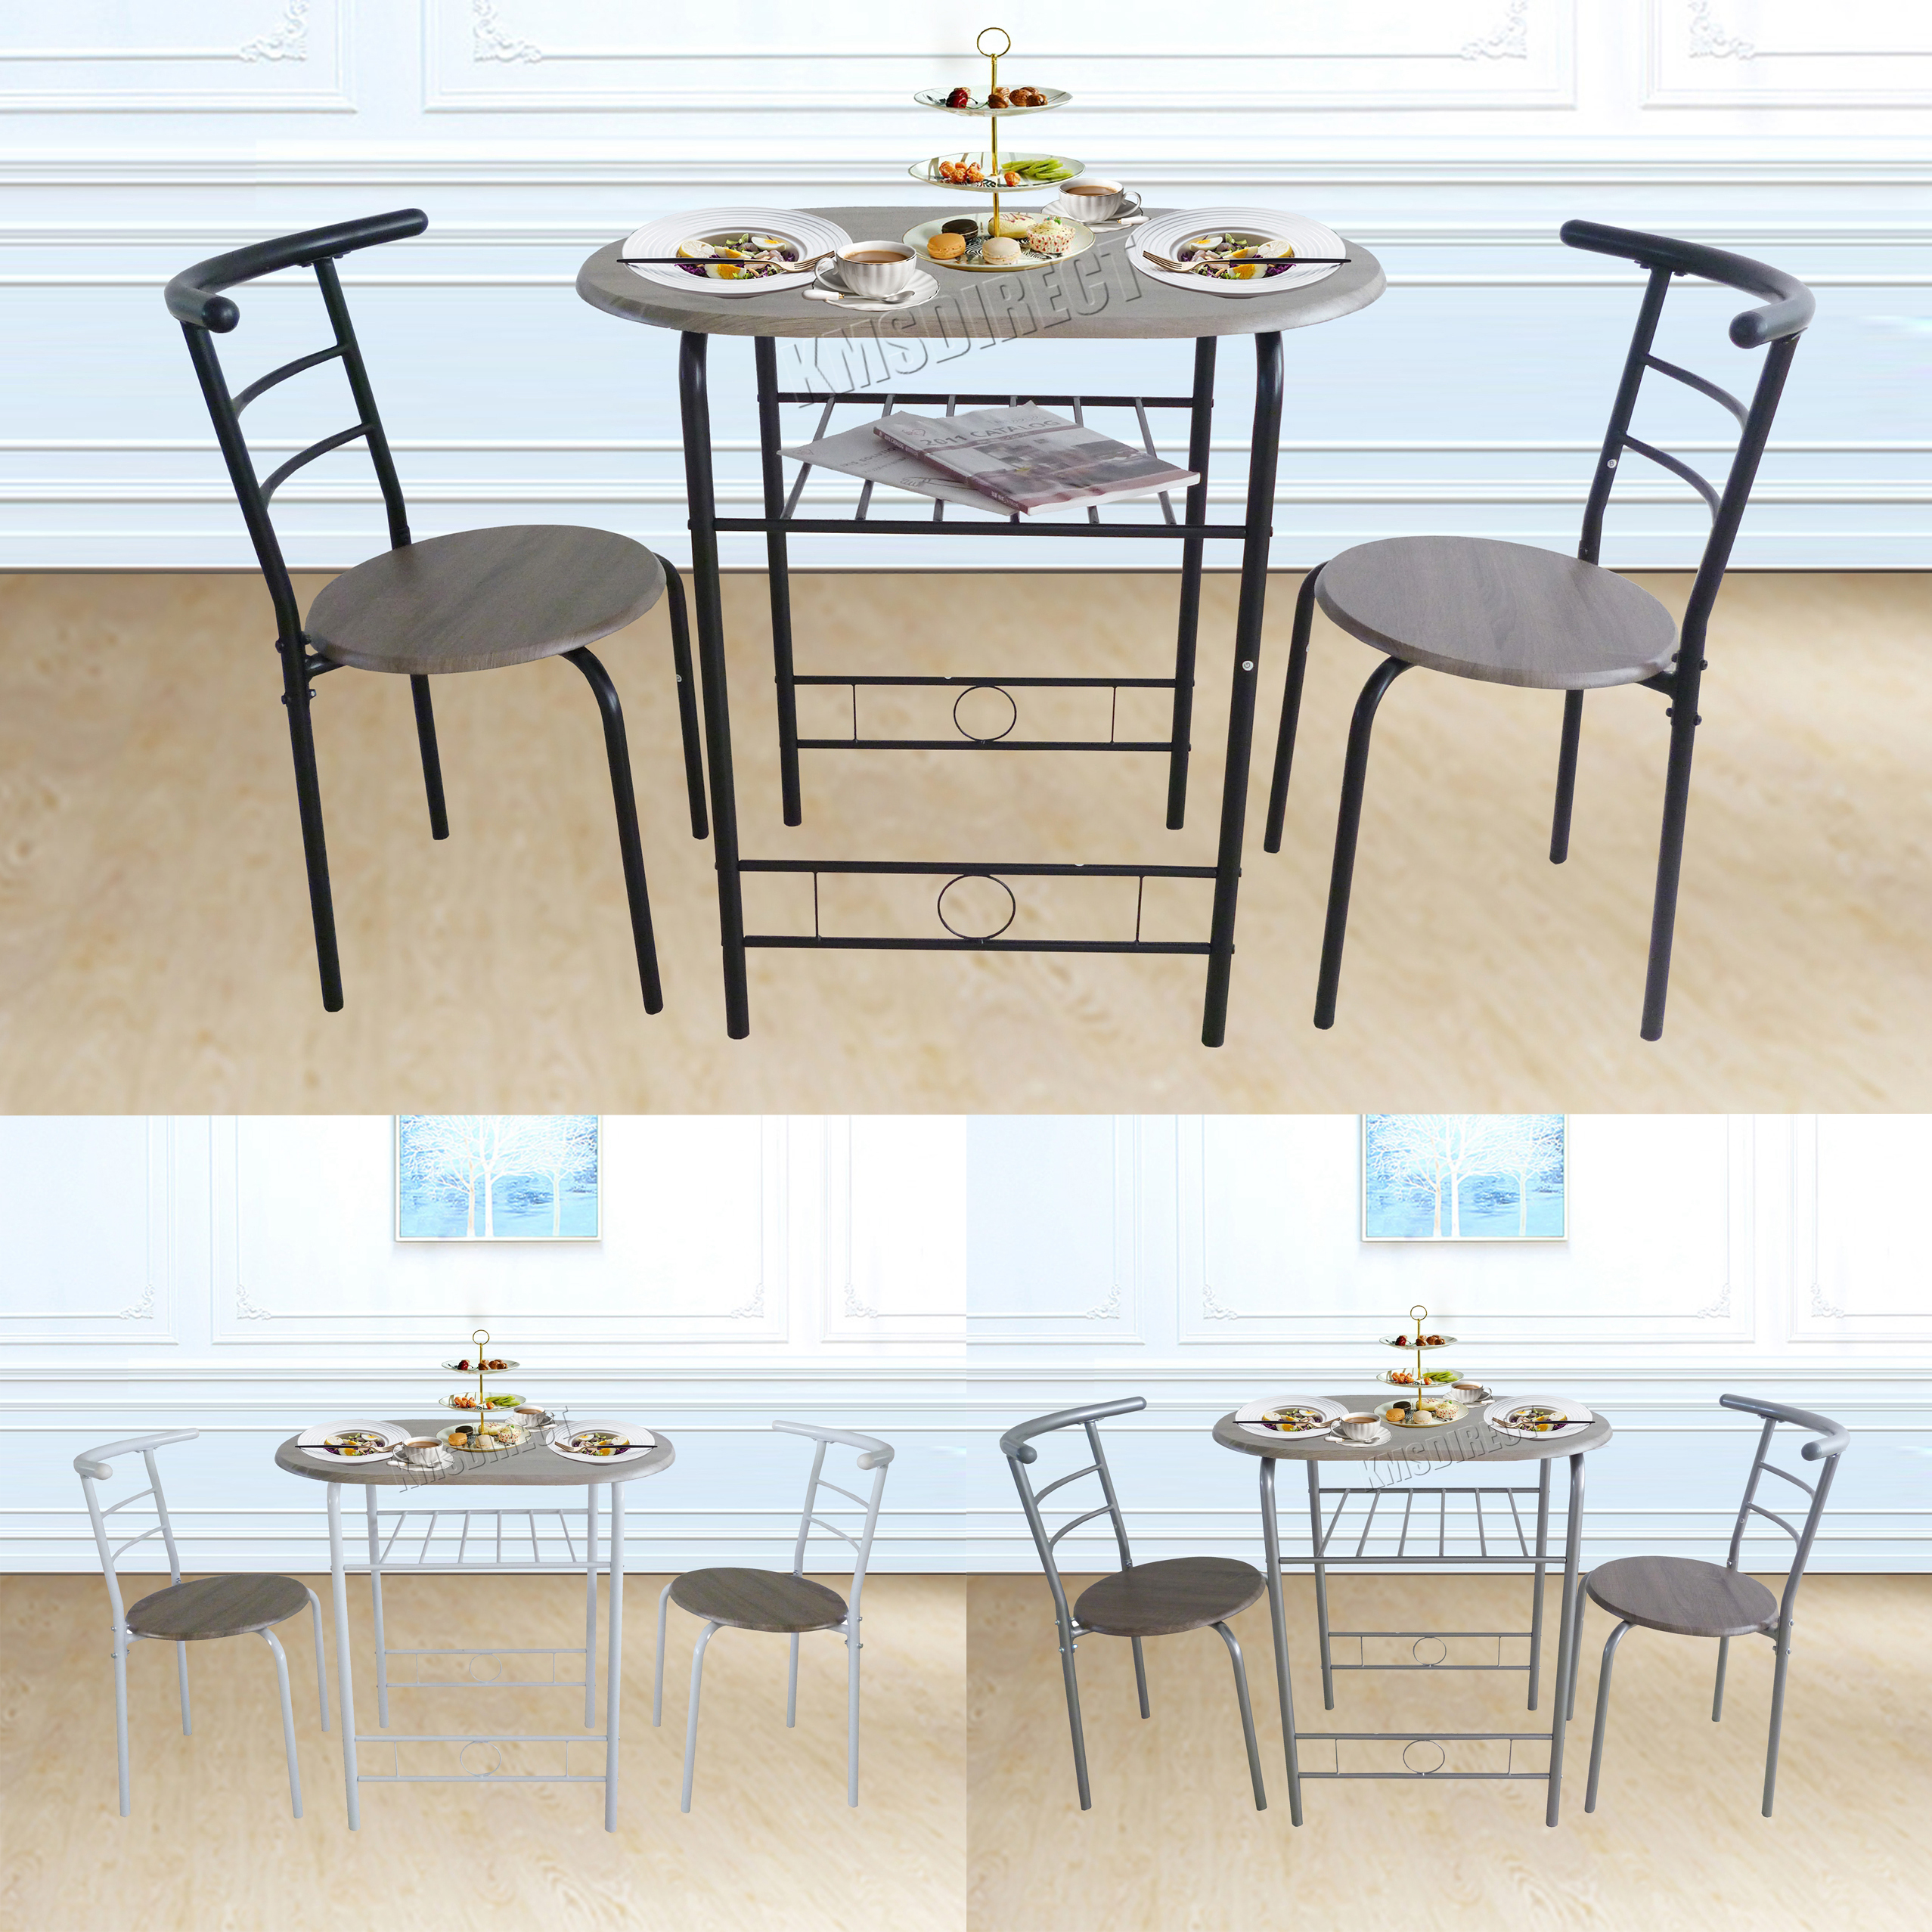 Compact Dining Table And Chairs: FoxHunter Compact Dining Table Breakfast Bar 2 Chair Set